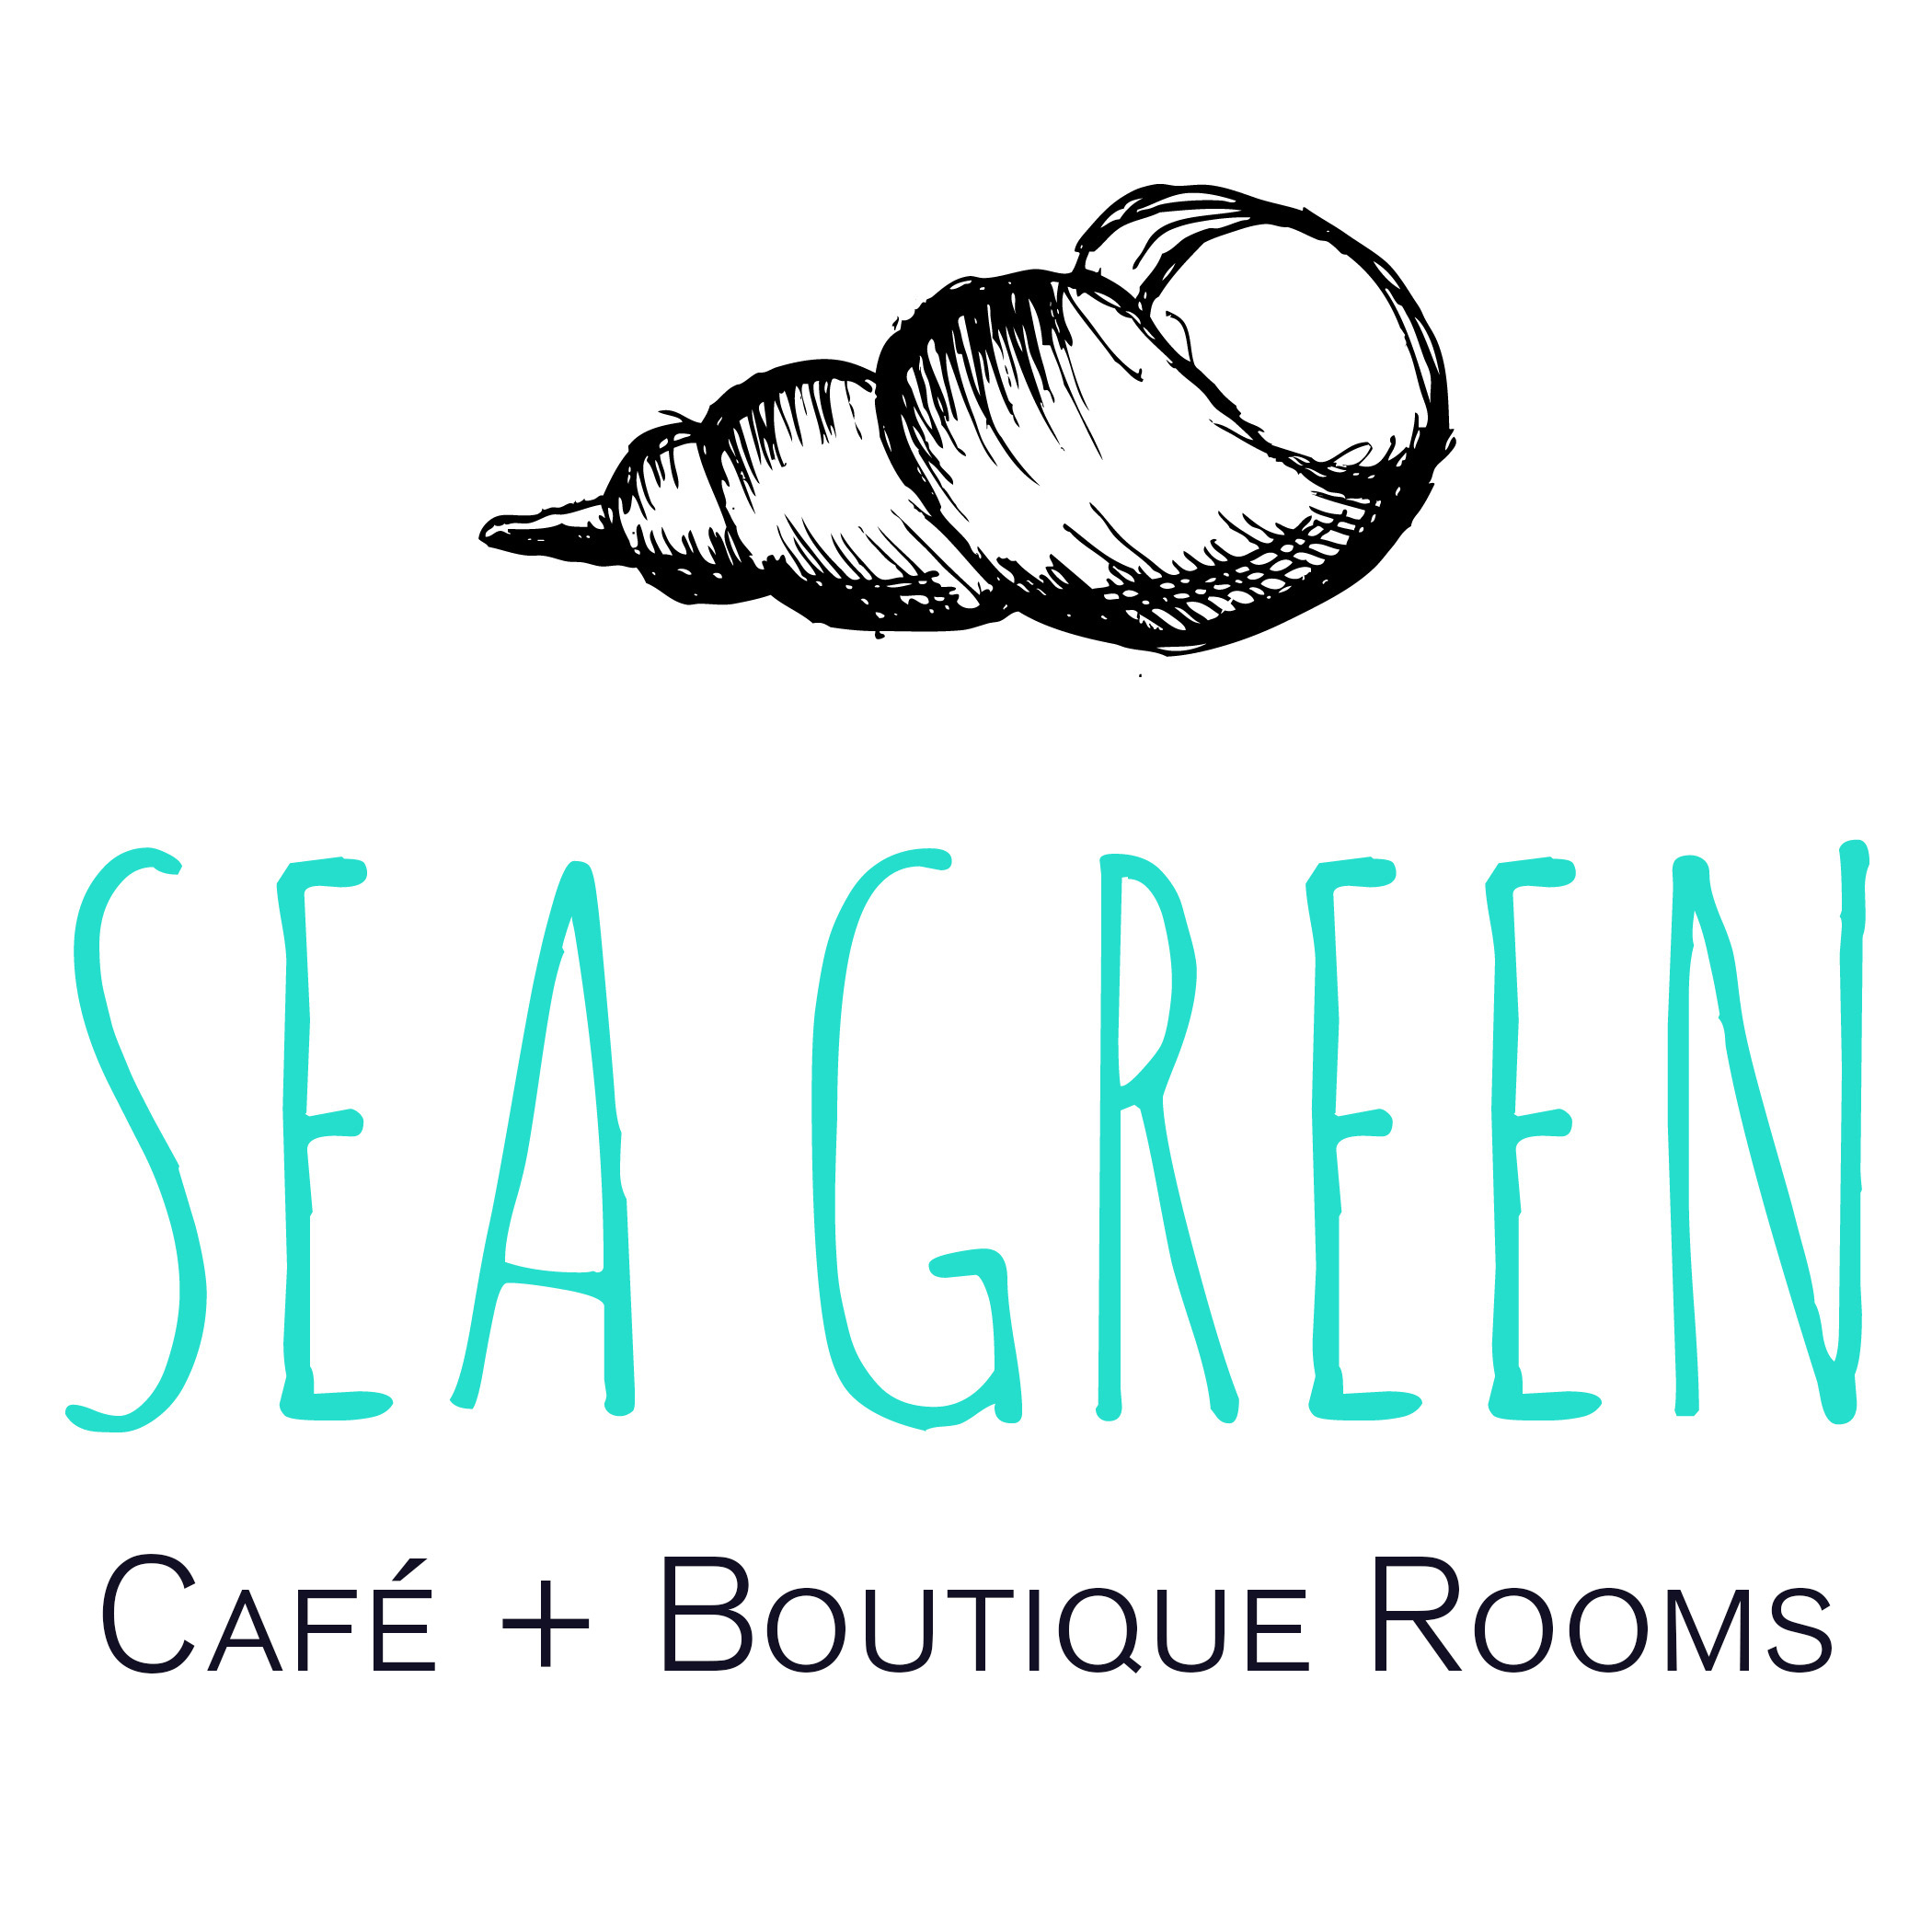 Sea Green Cafe & Boutique Rooms